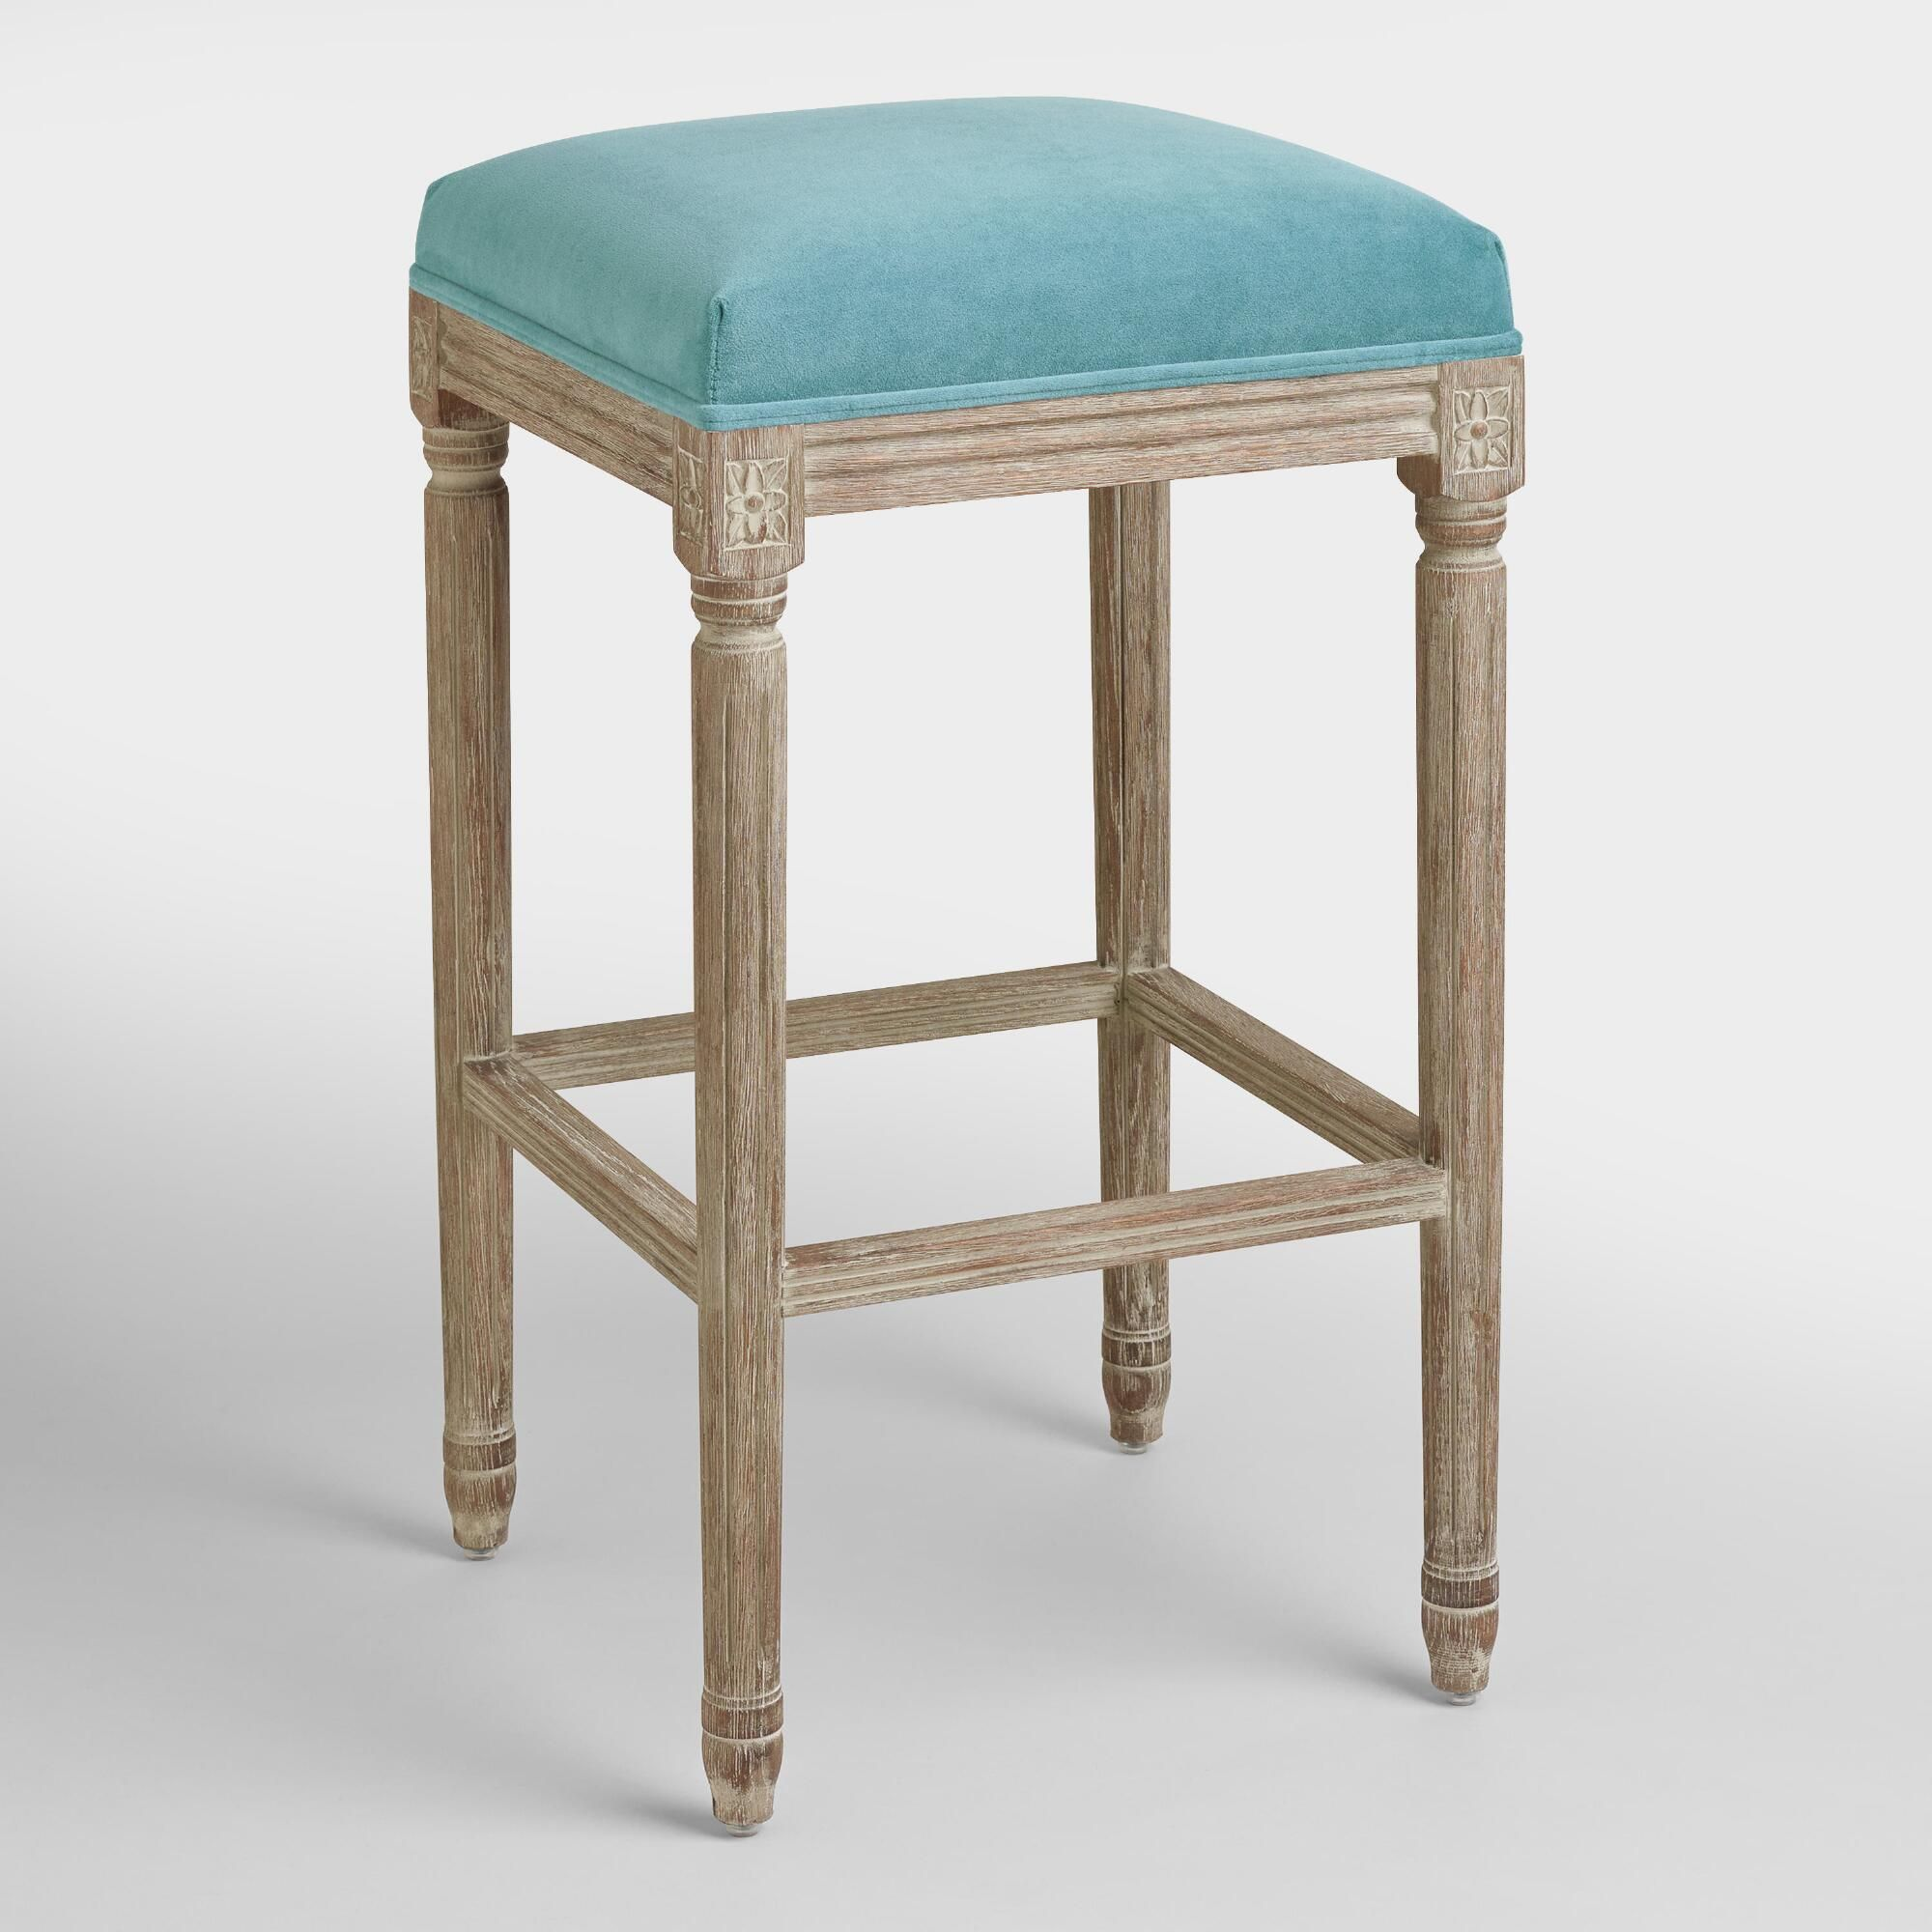 An elegant take on a classic our peacock paige backless barstool is crafted of american white oak with carved details and a distressed finish